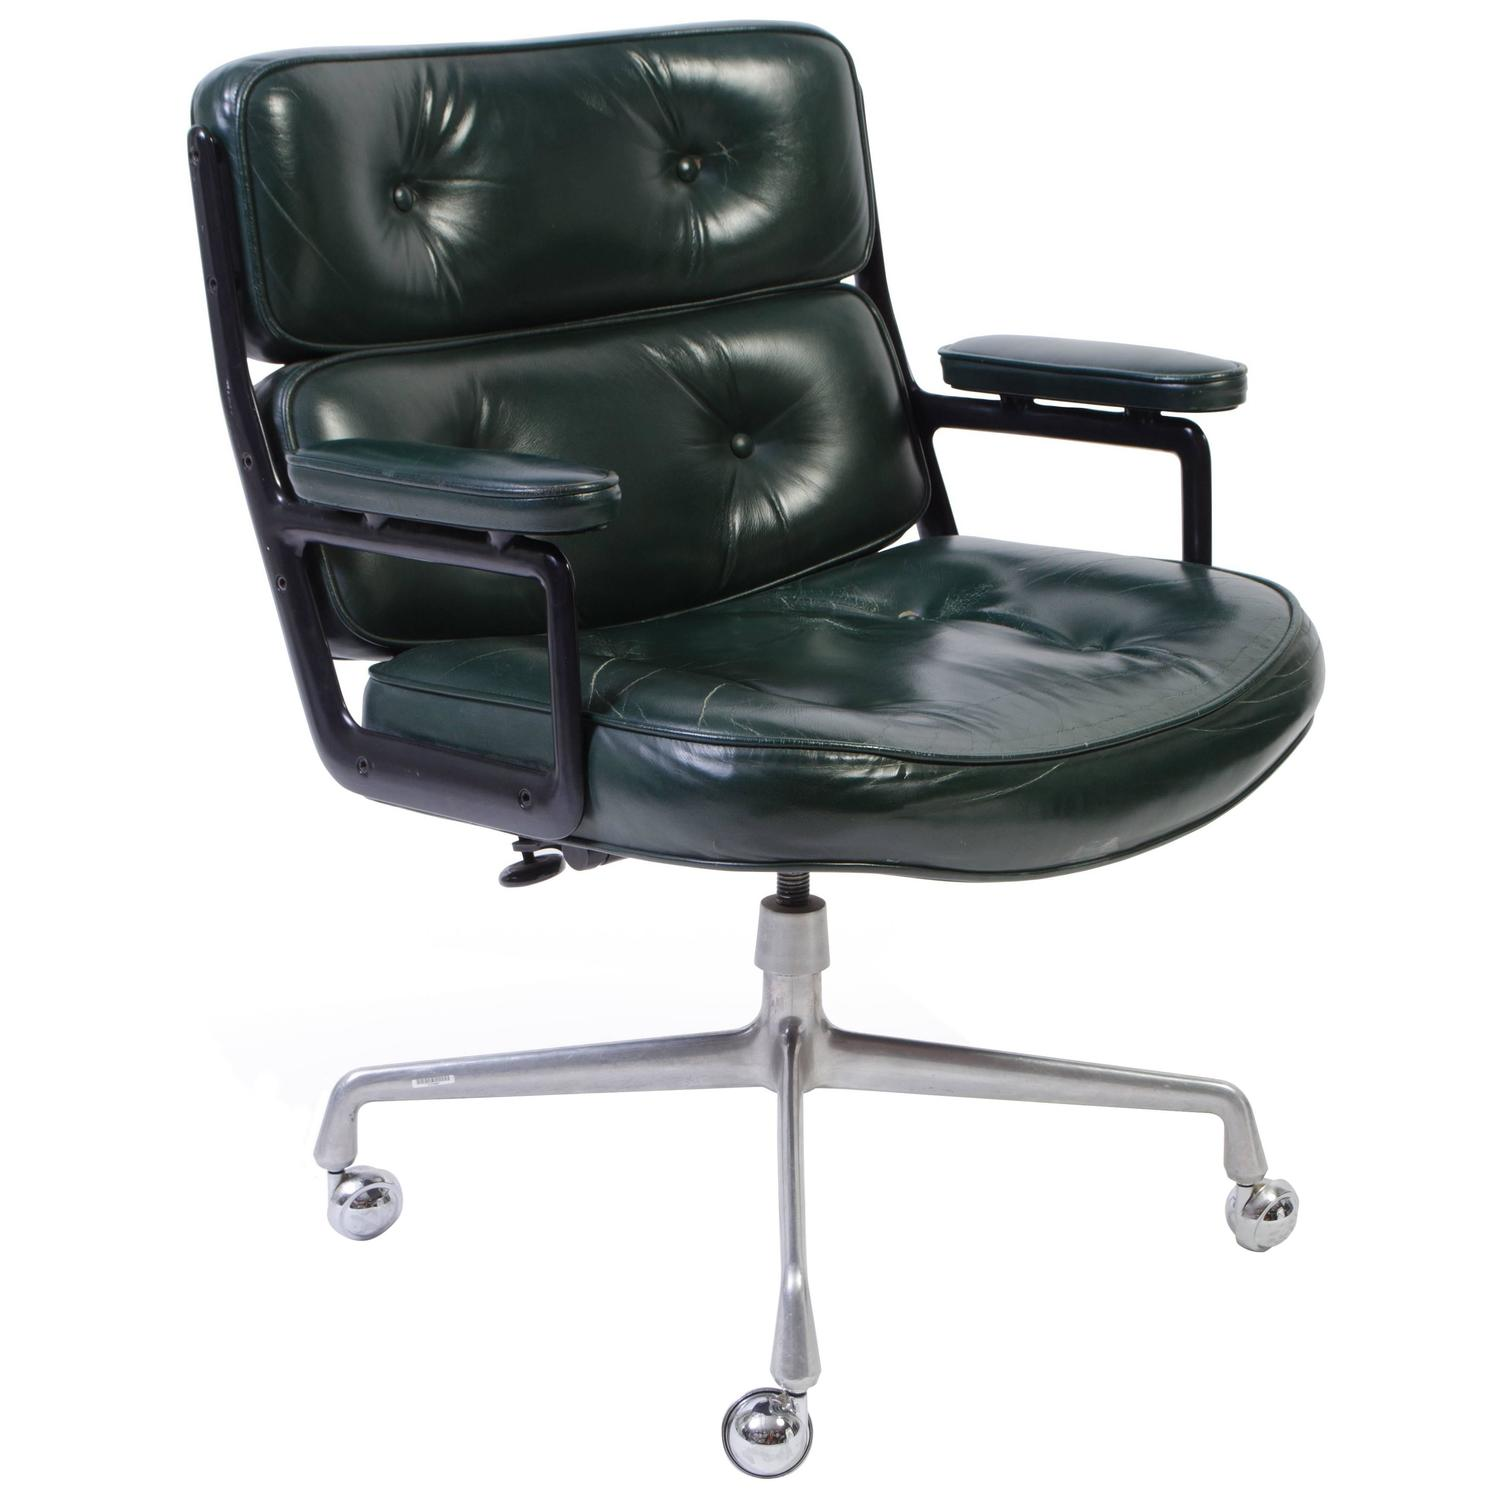 Time Life Chair by Eames for Herman Miller in Green